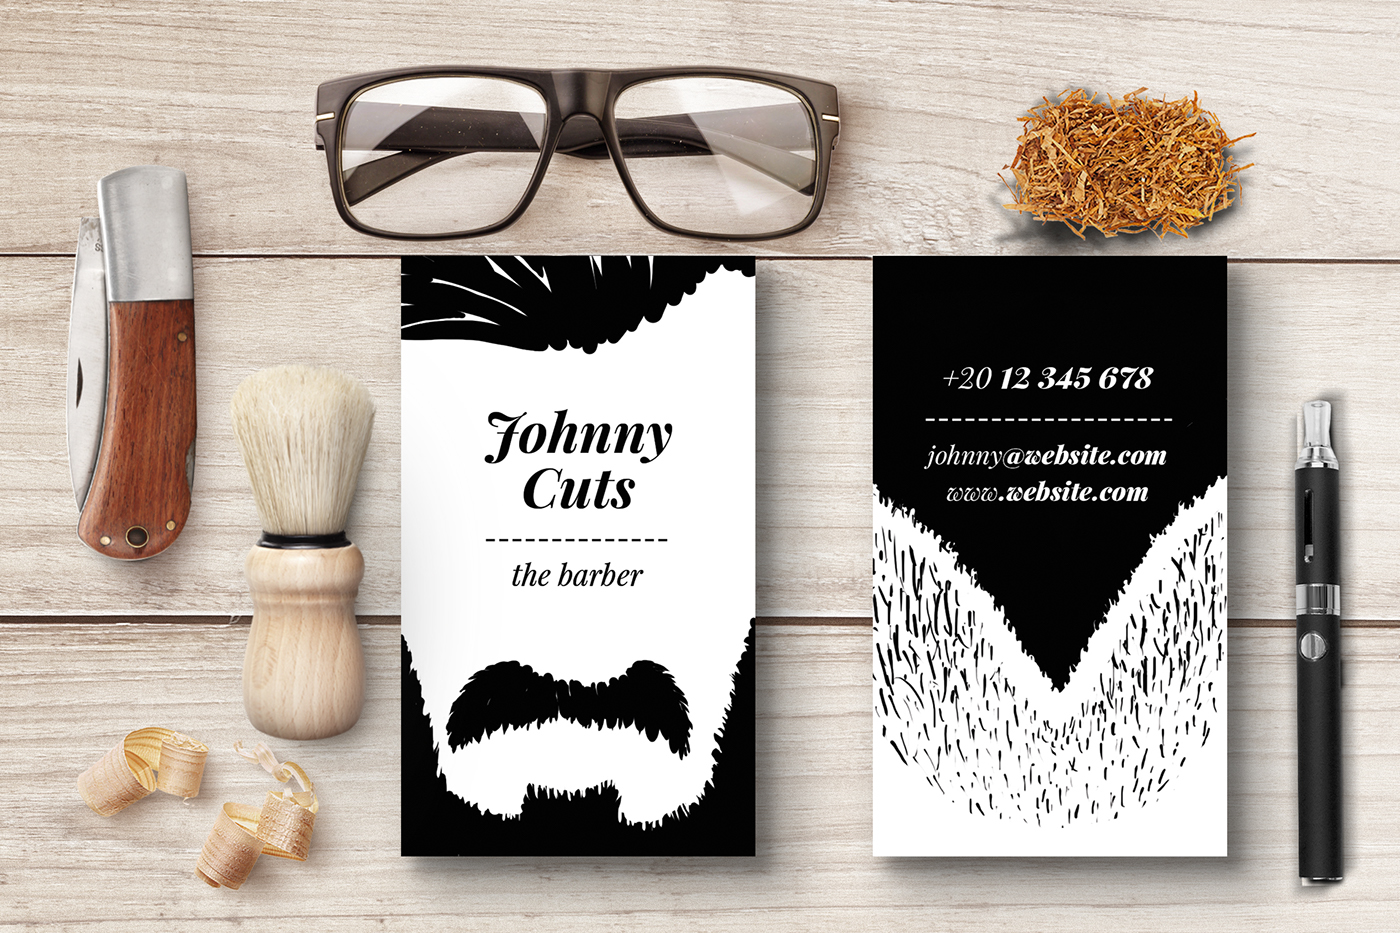 The barber business cards templates on behance choose your hairstyle and your beard then edit your name and youre done customize the business card to match your style you have 25 variations possible fbccfo